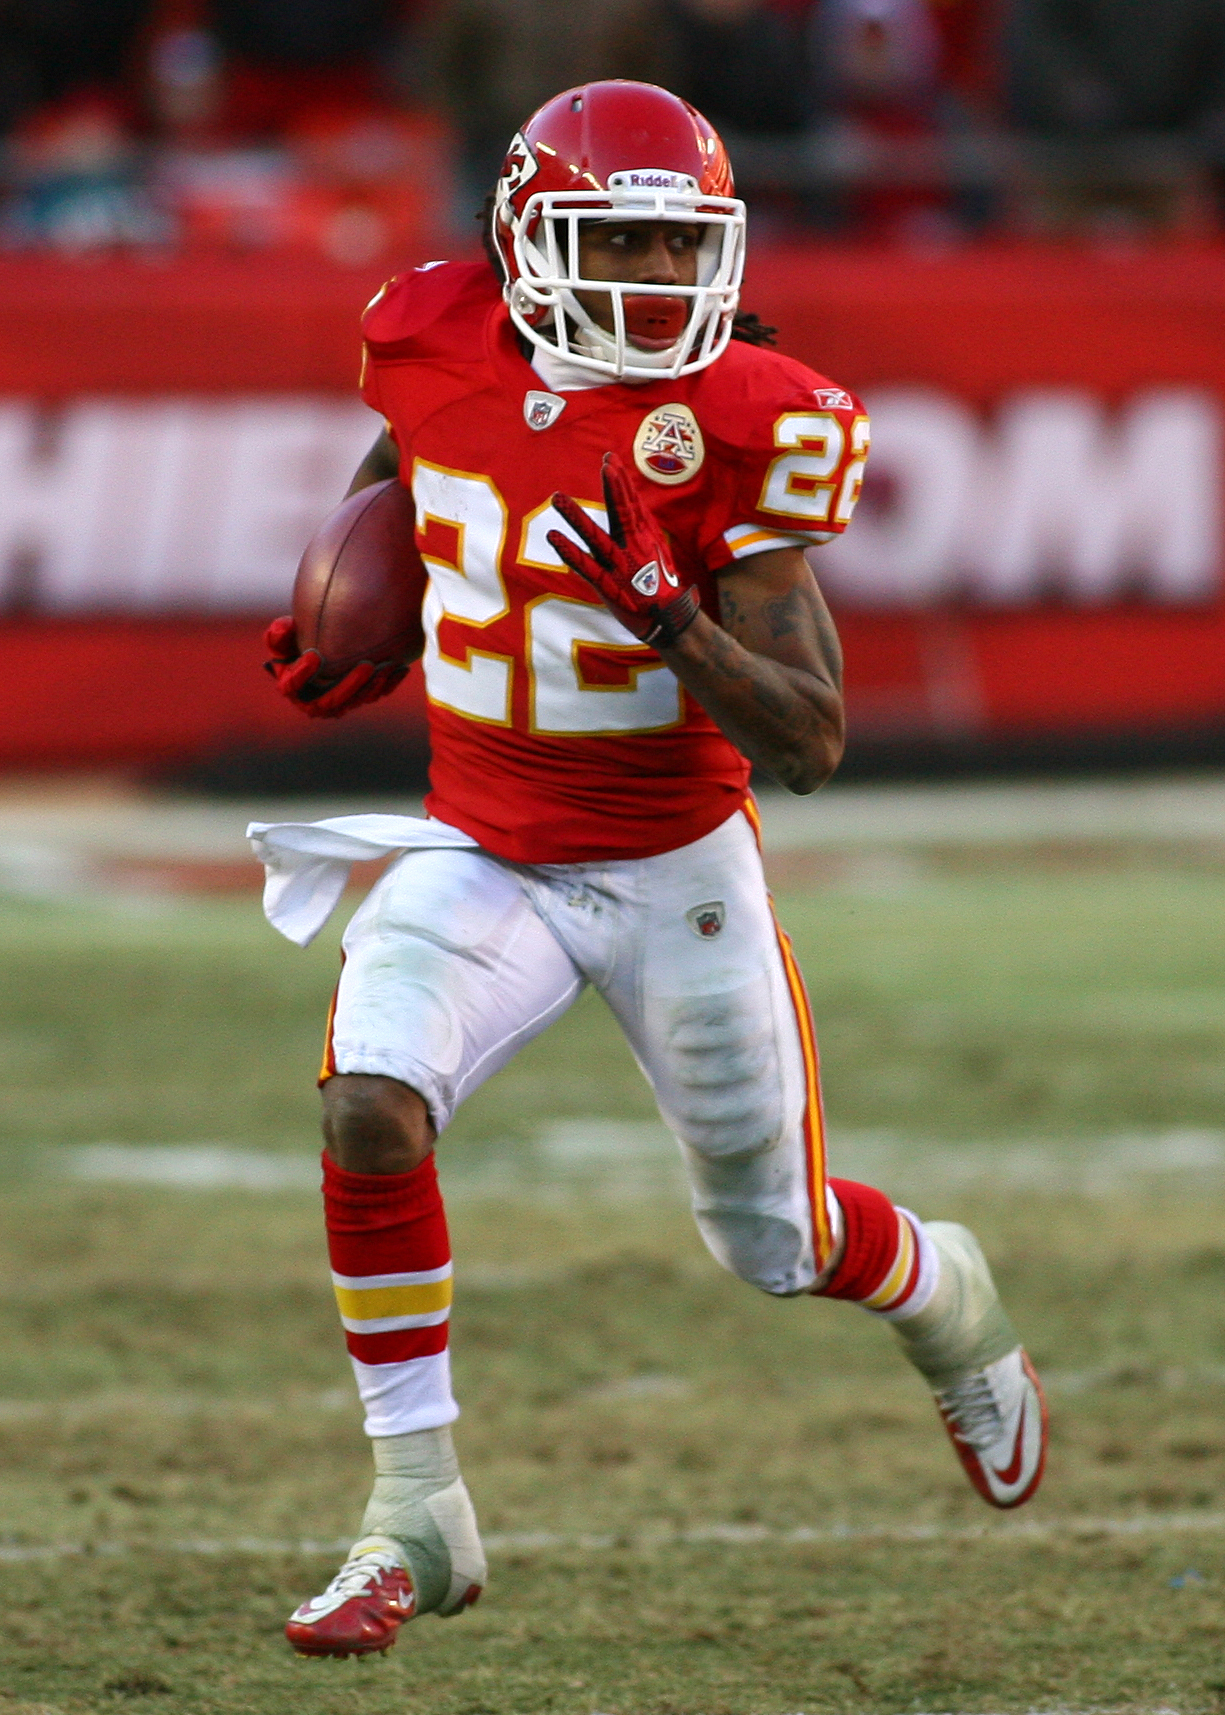 KANSAS CITY, MO - JANUARY 02:  Wide receiver Dexter McCluster #22 of the Kansas City Chiefs runs down field in a game against the Oakland Raiders in a game at Arrowhead Stadium on January 2, 2011 in Kansas City, Missouri.  (Photo by Tim Umphrey/Getty Imag